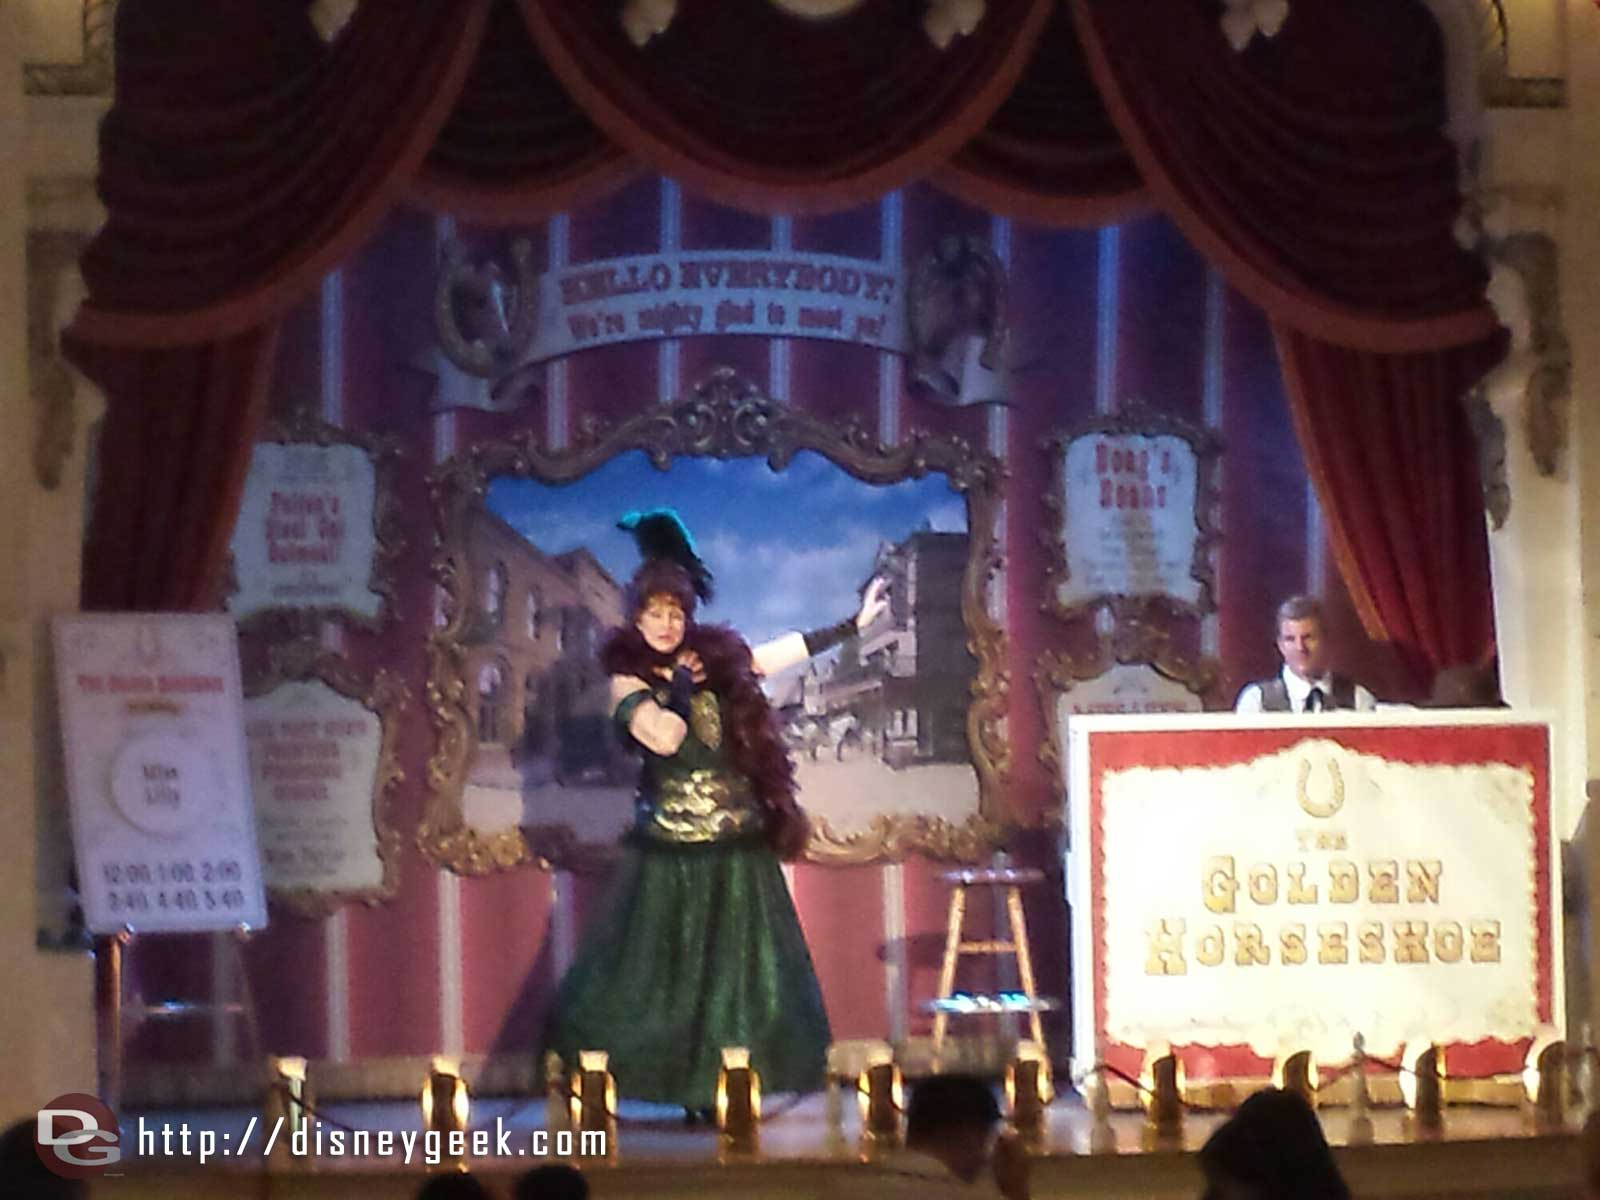 Miss Lilly entertaining guests in the Golden Horseshoe #Disneyland